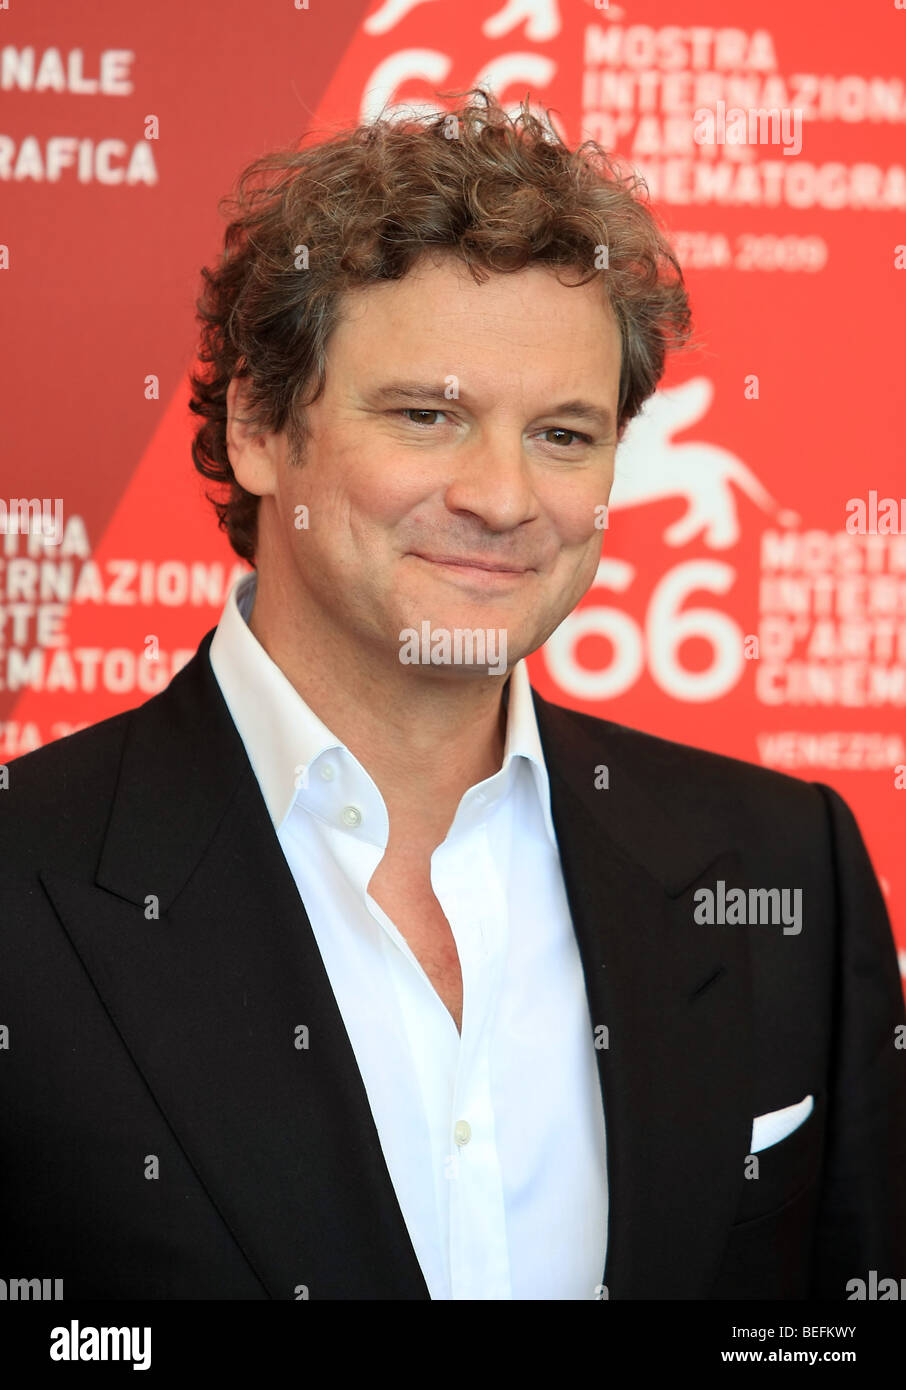 single gay men in firth The timing couldn't have been eerier, colin firth recalls it was tuesday, nov 4, 2008, and firth was filming a scene for tom ford's film, a single.